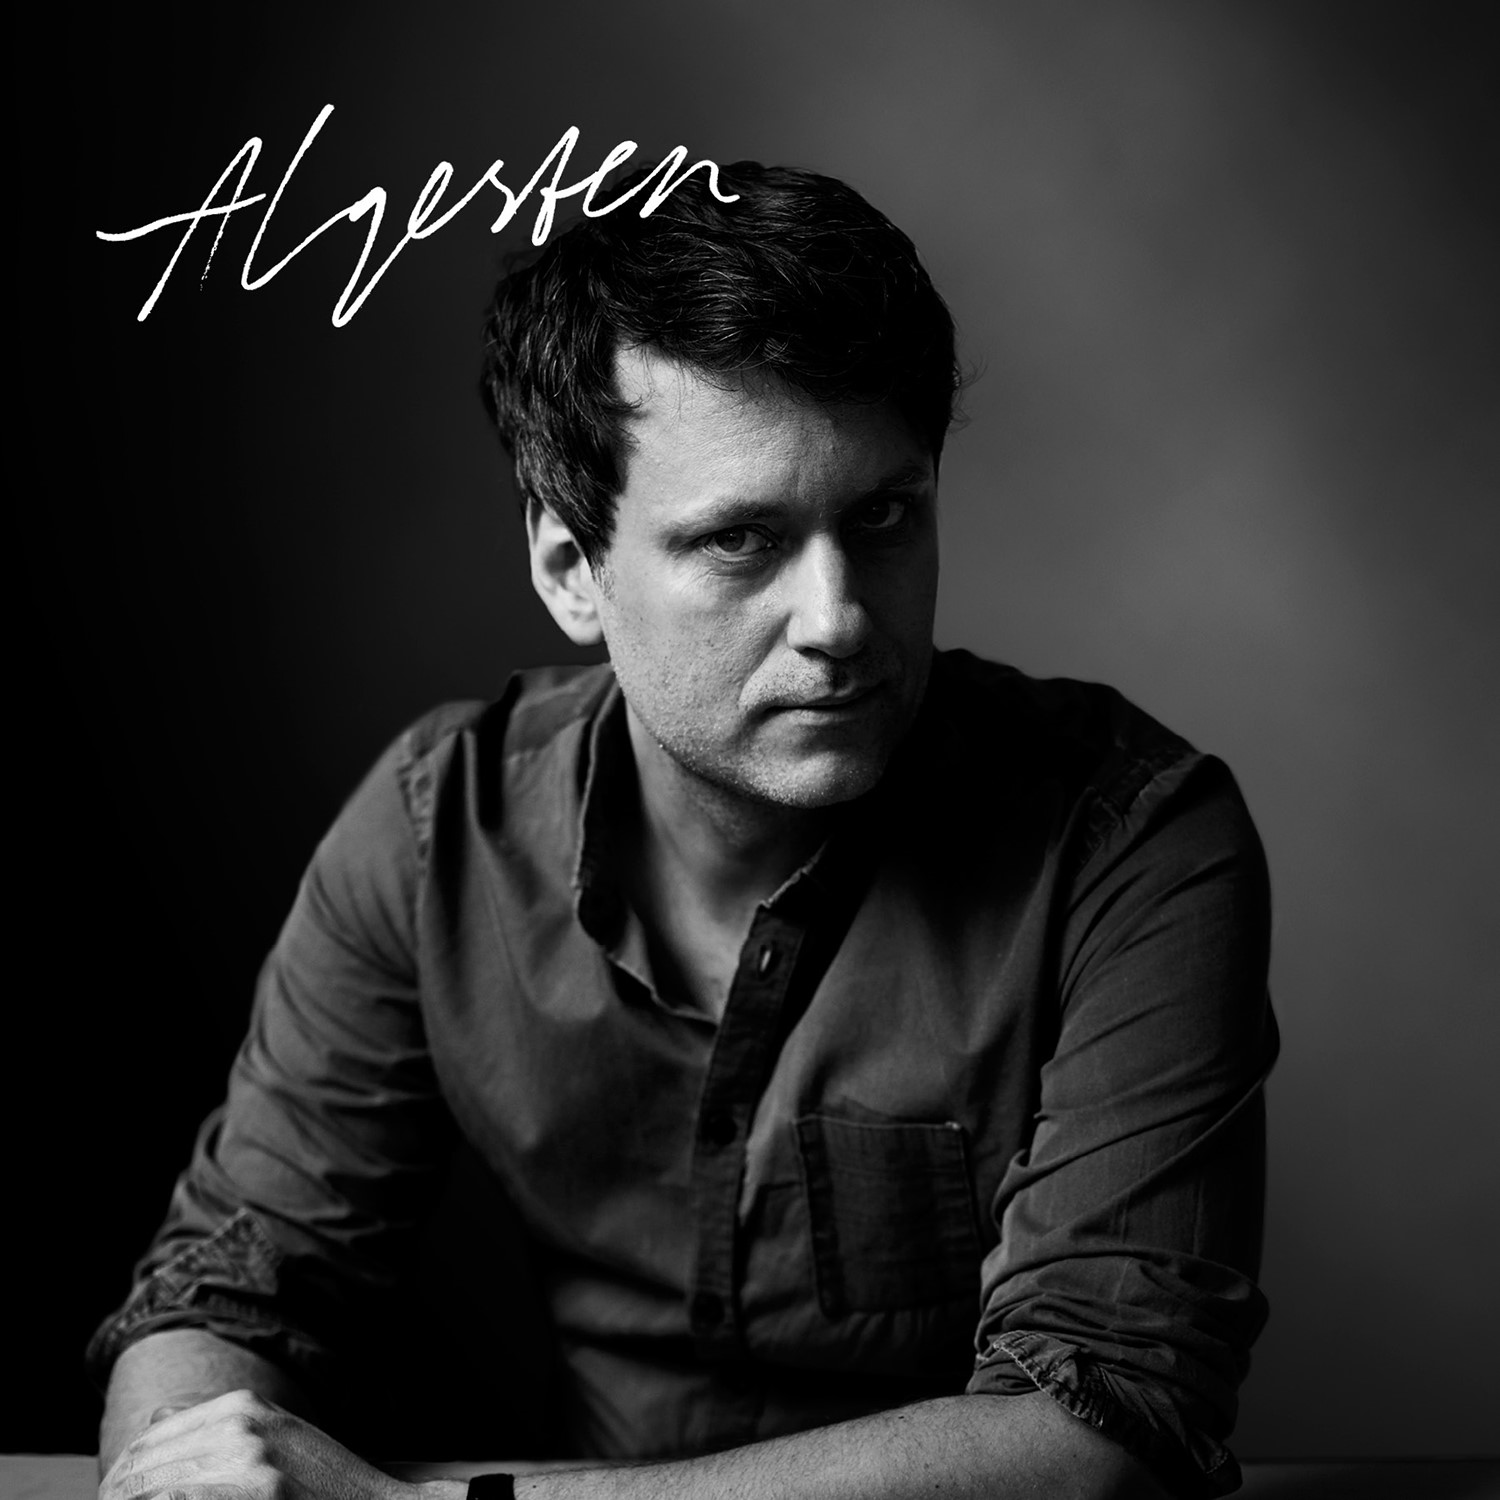 algesten album cover